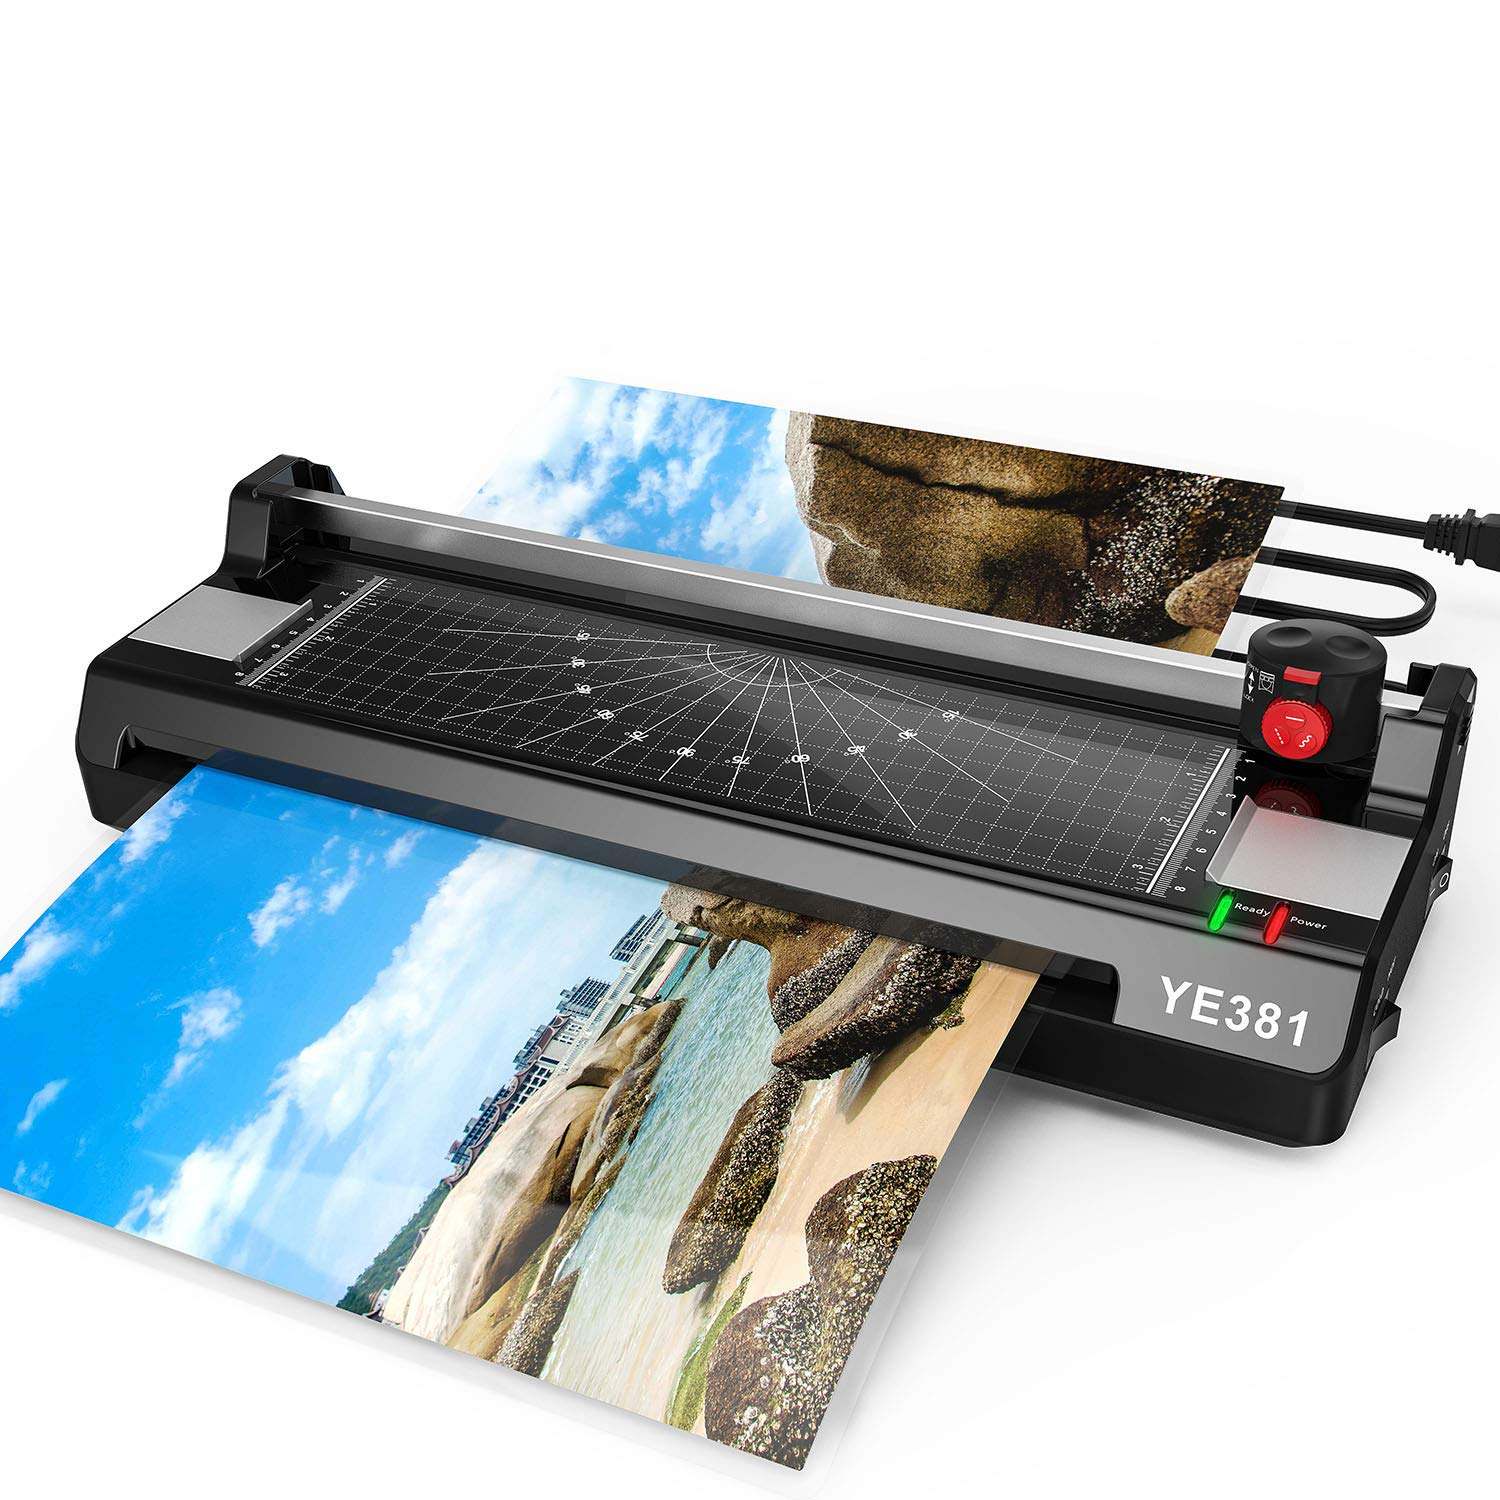 Best Laminating Machine For Home 1